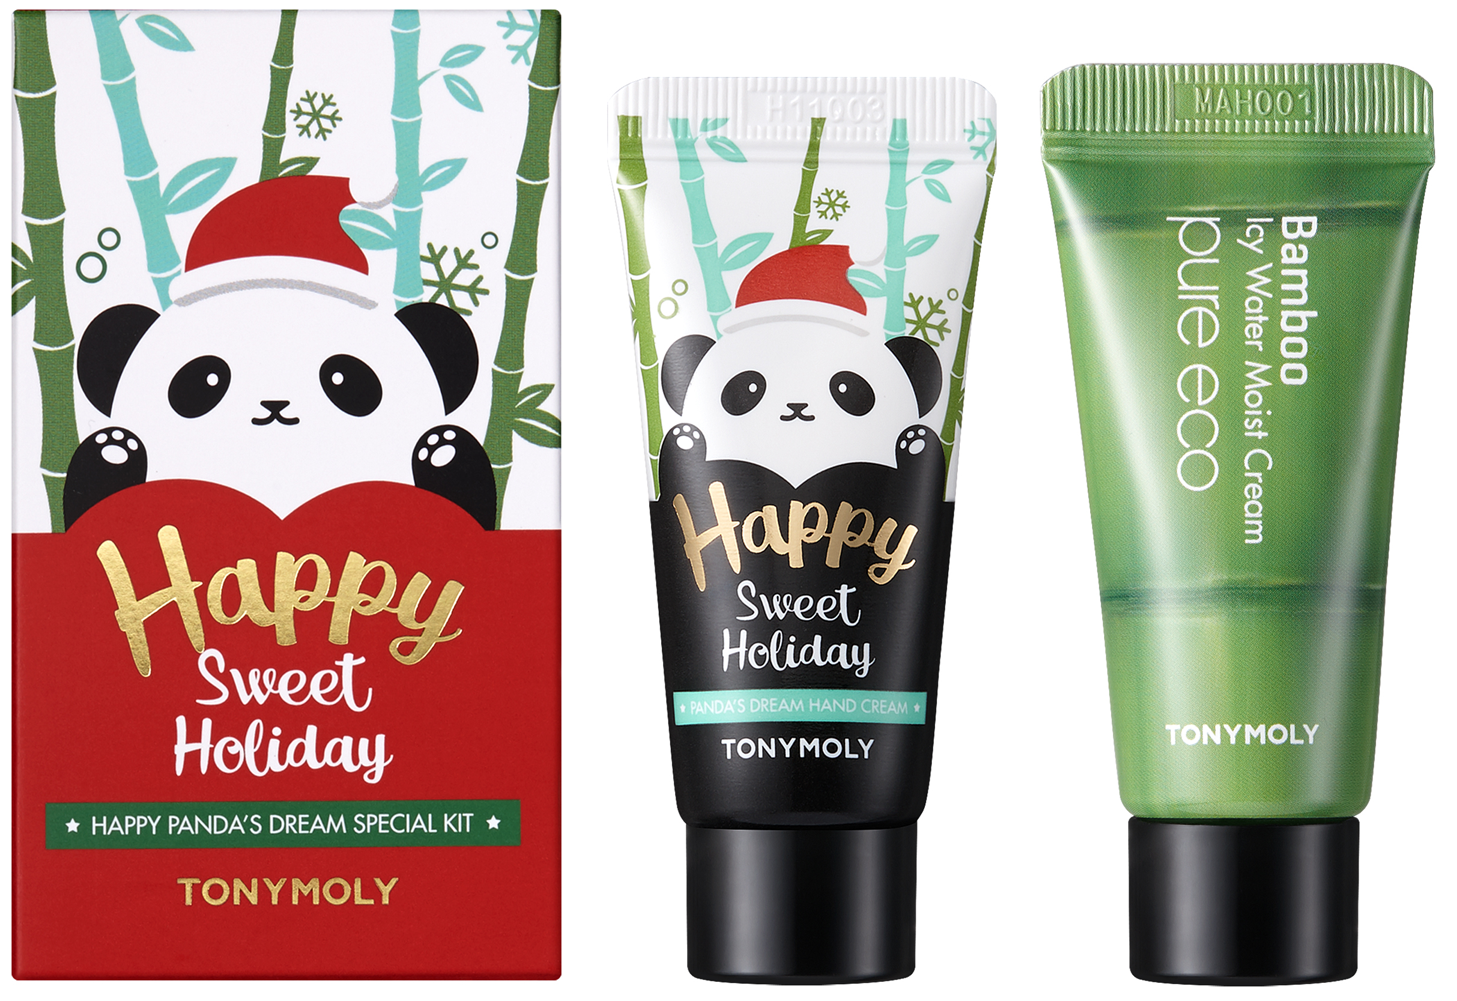 Tony Moly - Holiday Shop